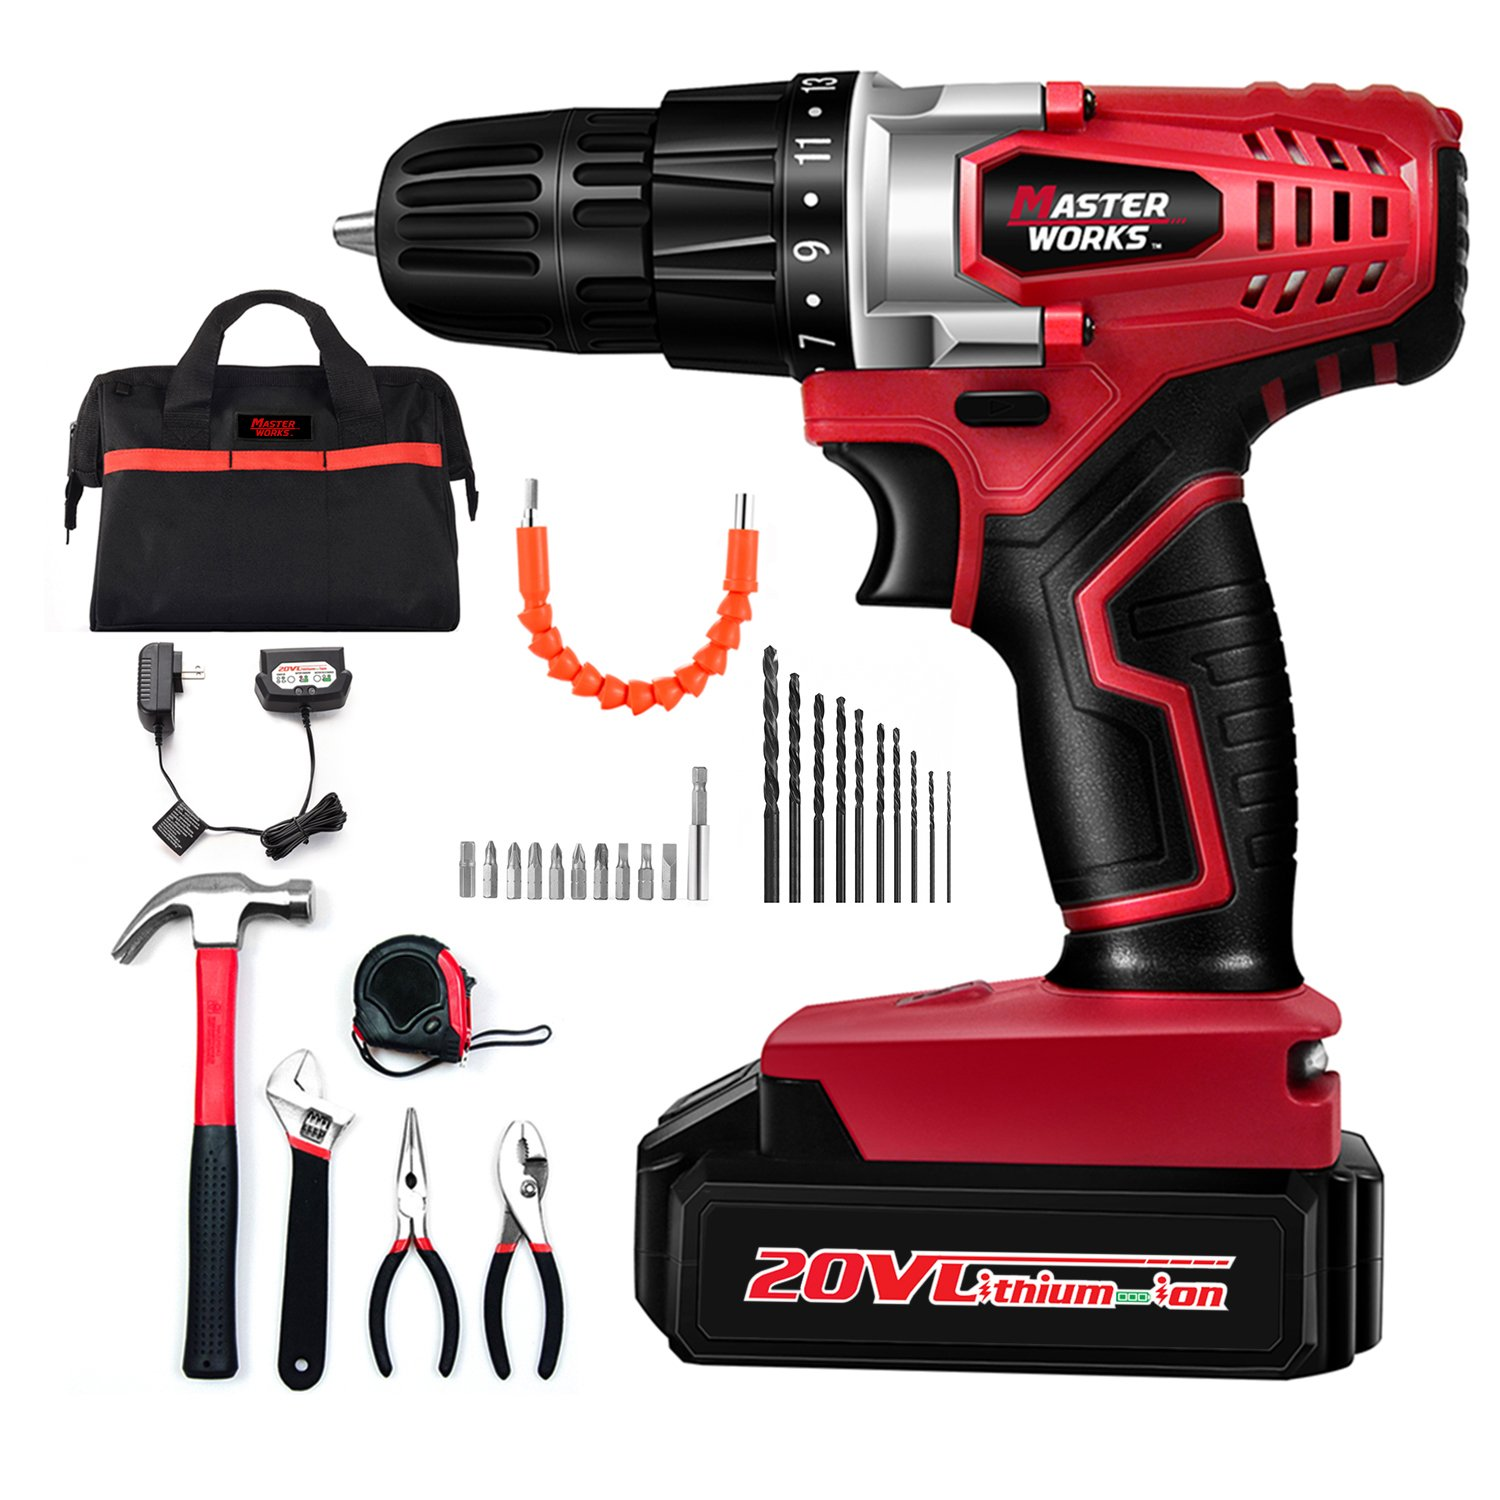 """Cordless Drill, 20V Lithium-Ion Electric Drill Driver Kit with 5-Pieces Household Hand Tool Set & 22pcs Accessories, 3/8"""" Keyless Chuck, Variable Speed, 15+1 Position, LED Light, Masterworks MW316-KT"""